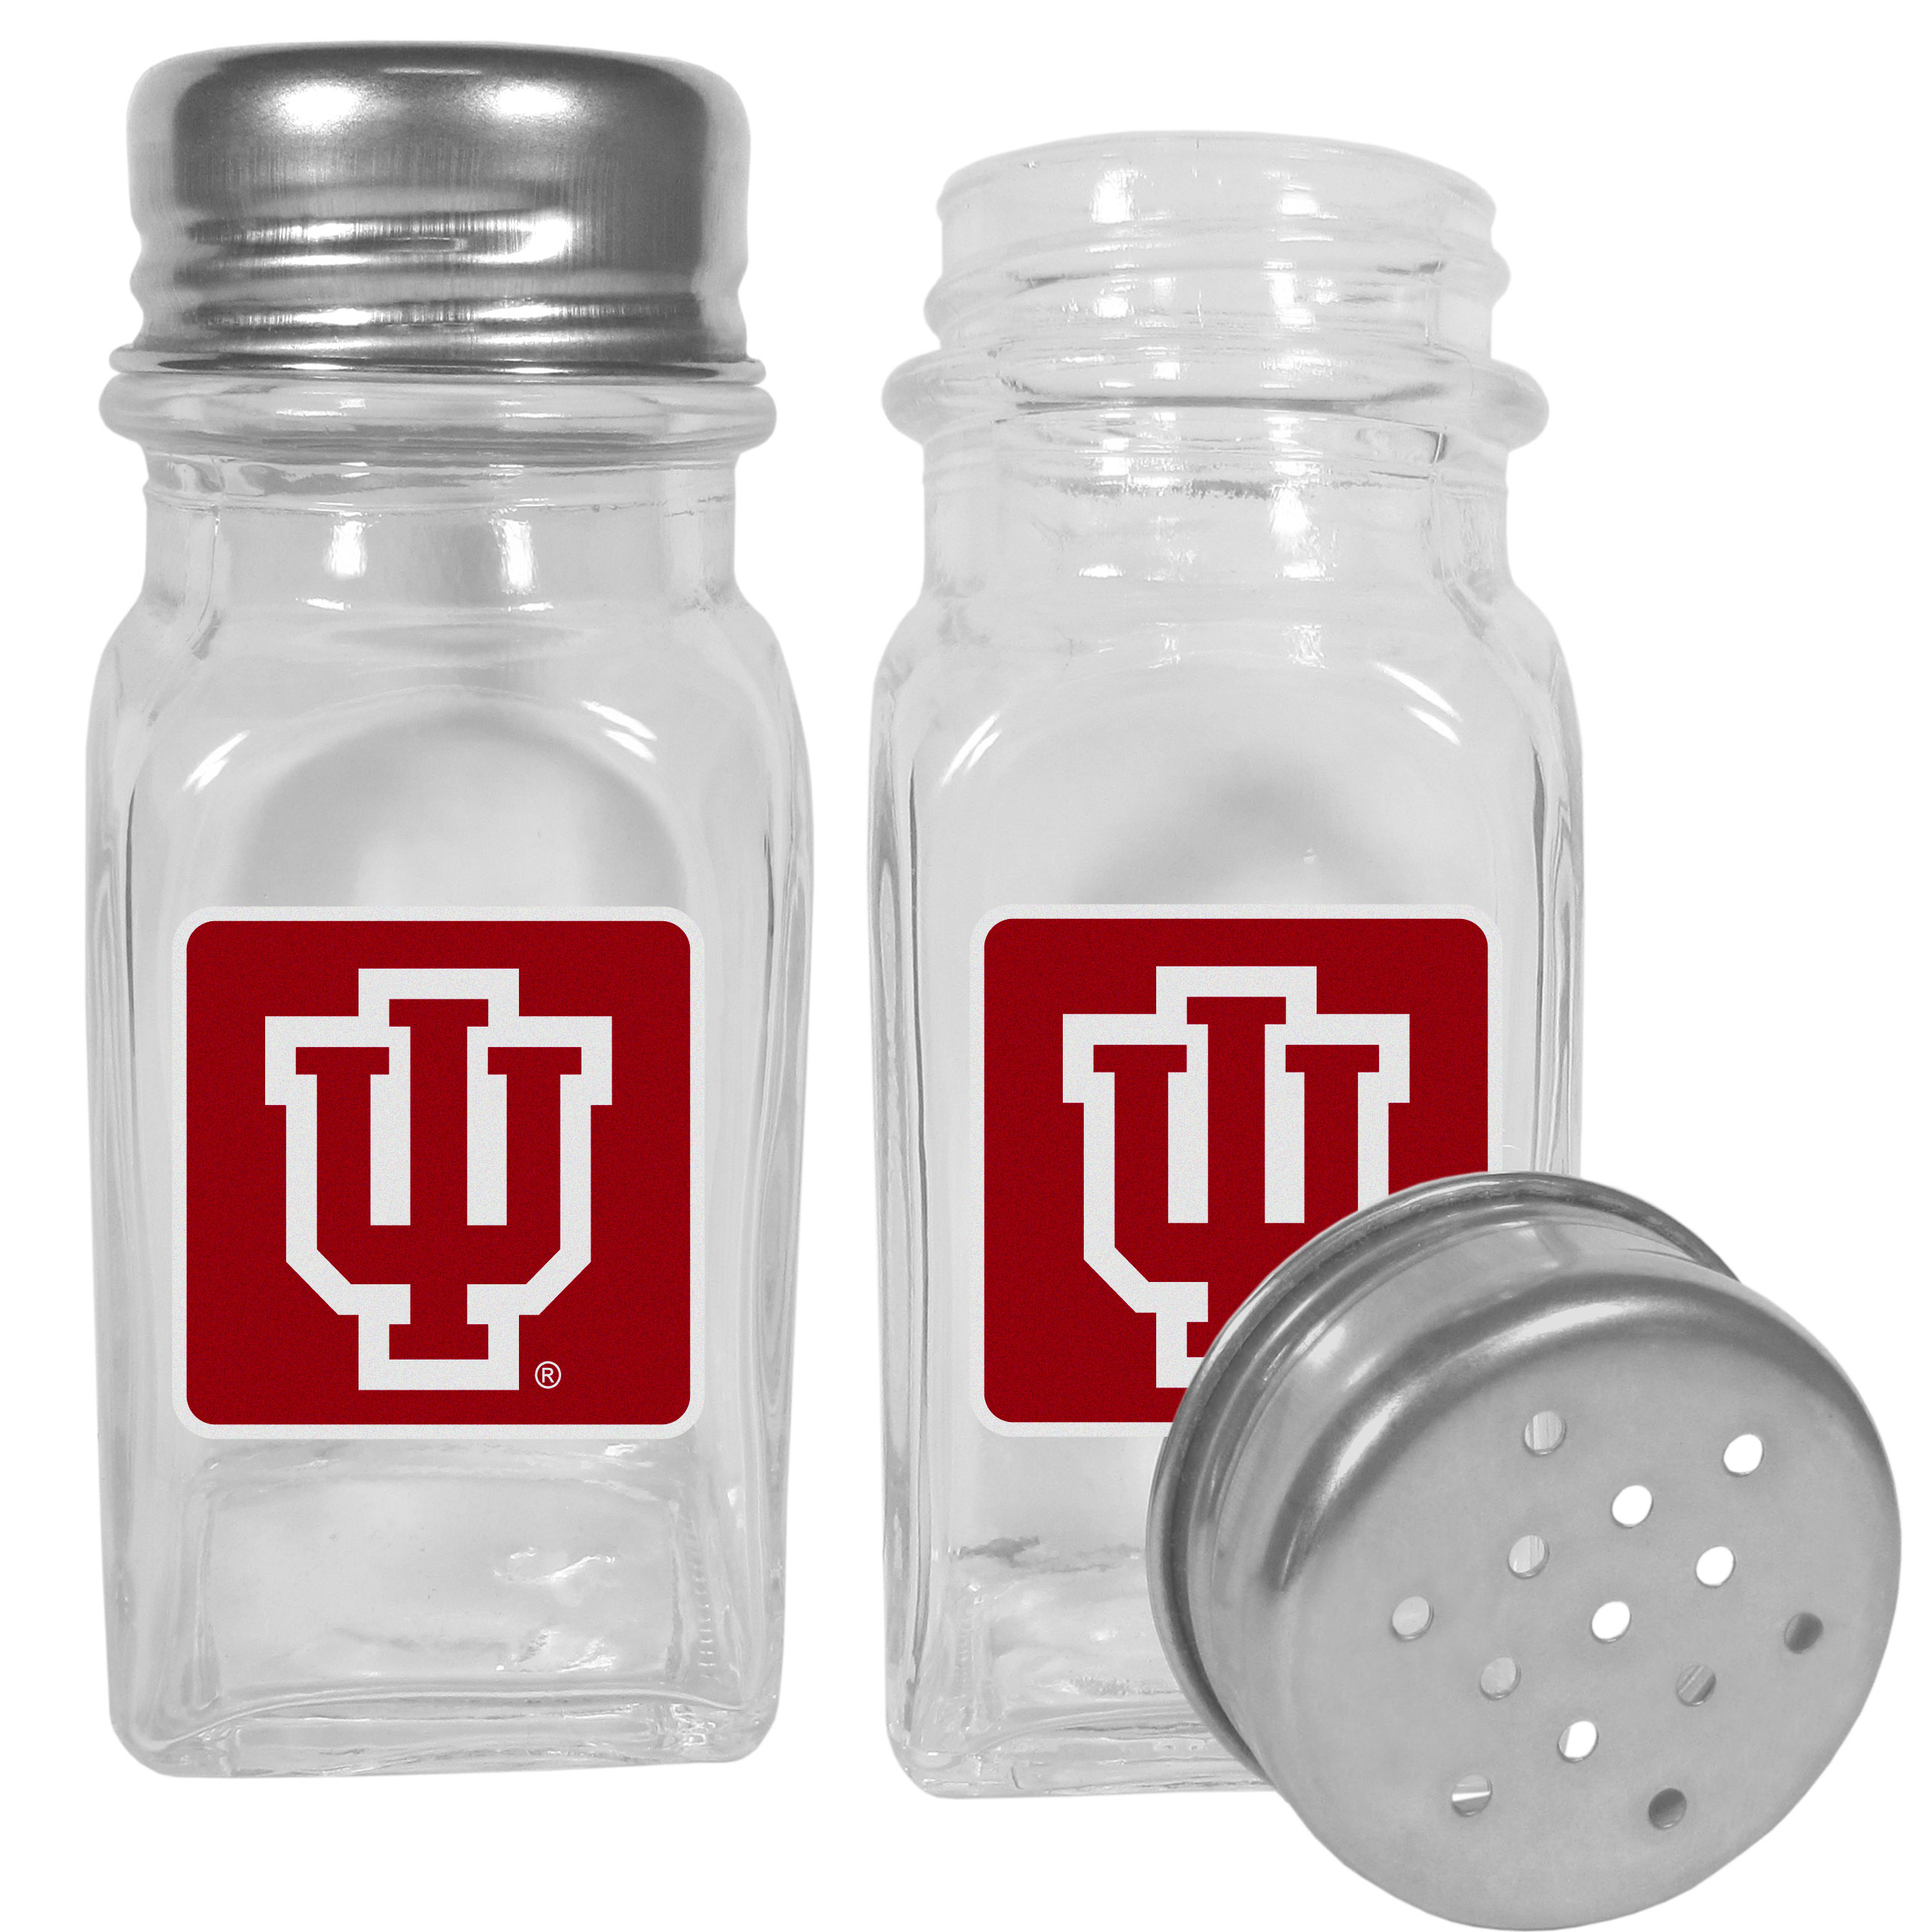 Indiana Hoosiers Graphics Salt and Pepper Shaker - No tailgate party is complete without your Indiana Hoosiers salt & pepper shakers featuring bright team logos. The diner replica salt and pepper shakers are glass with screw top lids. These team shakers are a great grill accessory whether you are barbecuing on the patio, picnicing or having a game day party.